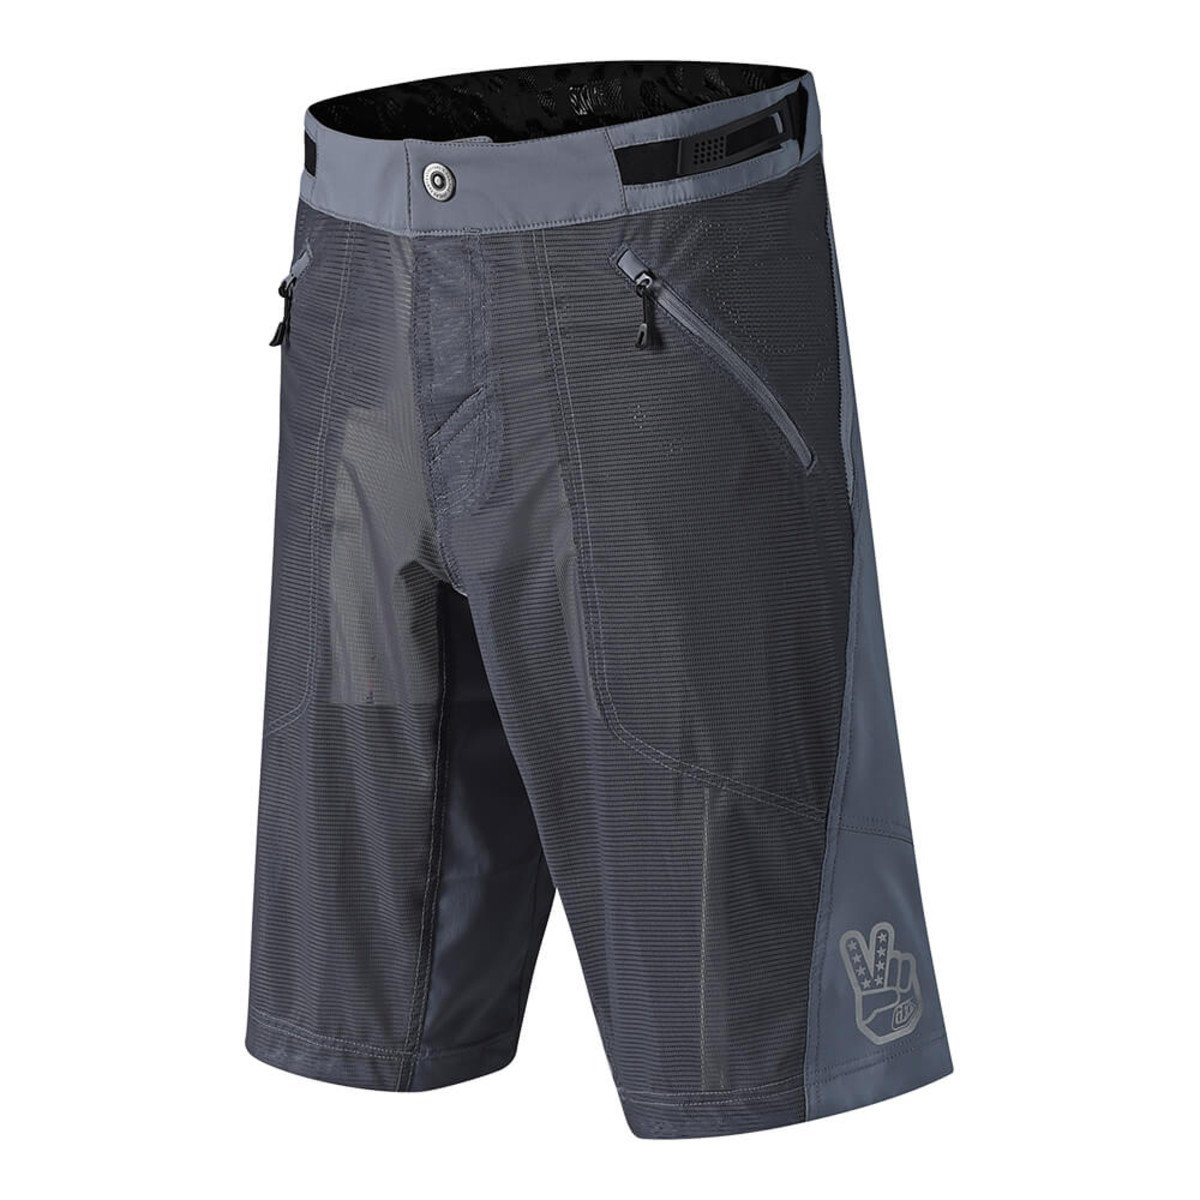 Troy Lee Designs Skyline Air Shorts with Liner - Black 30